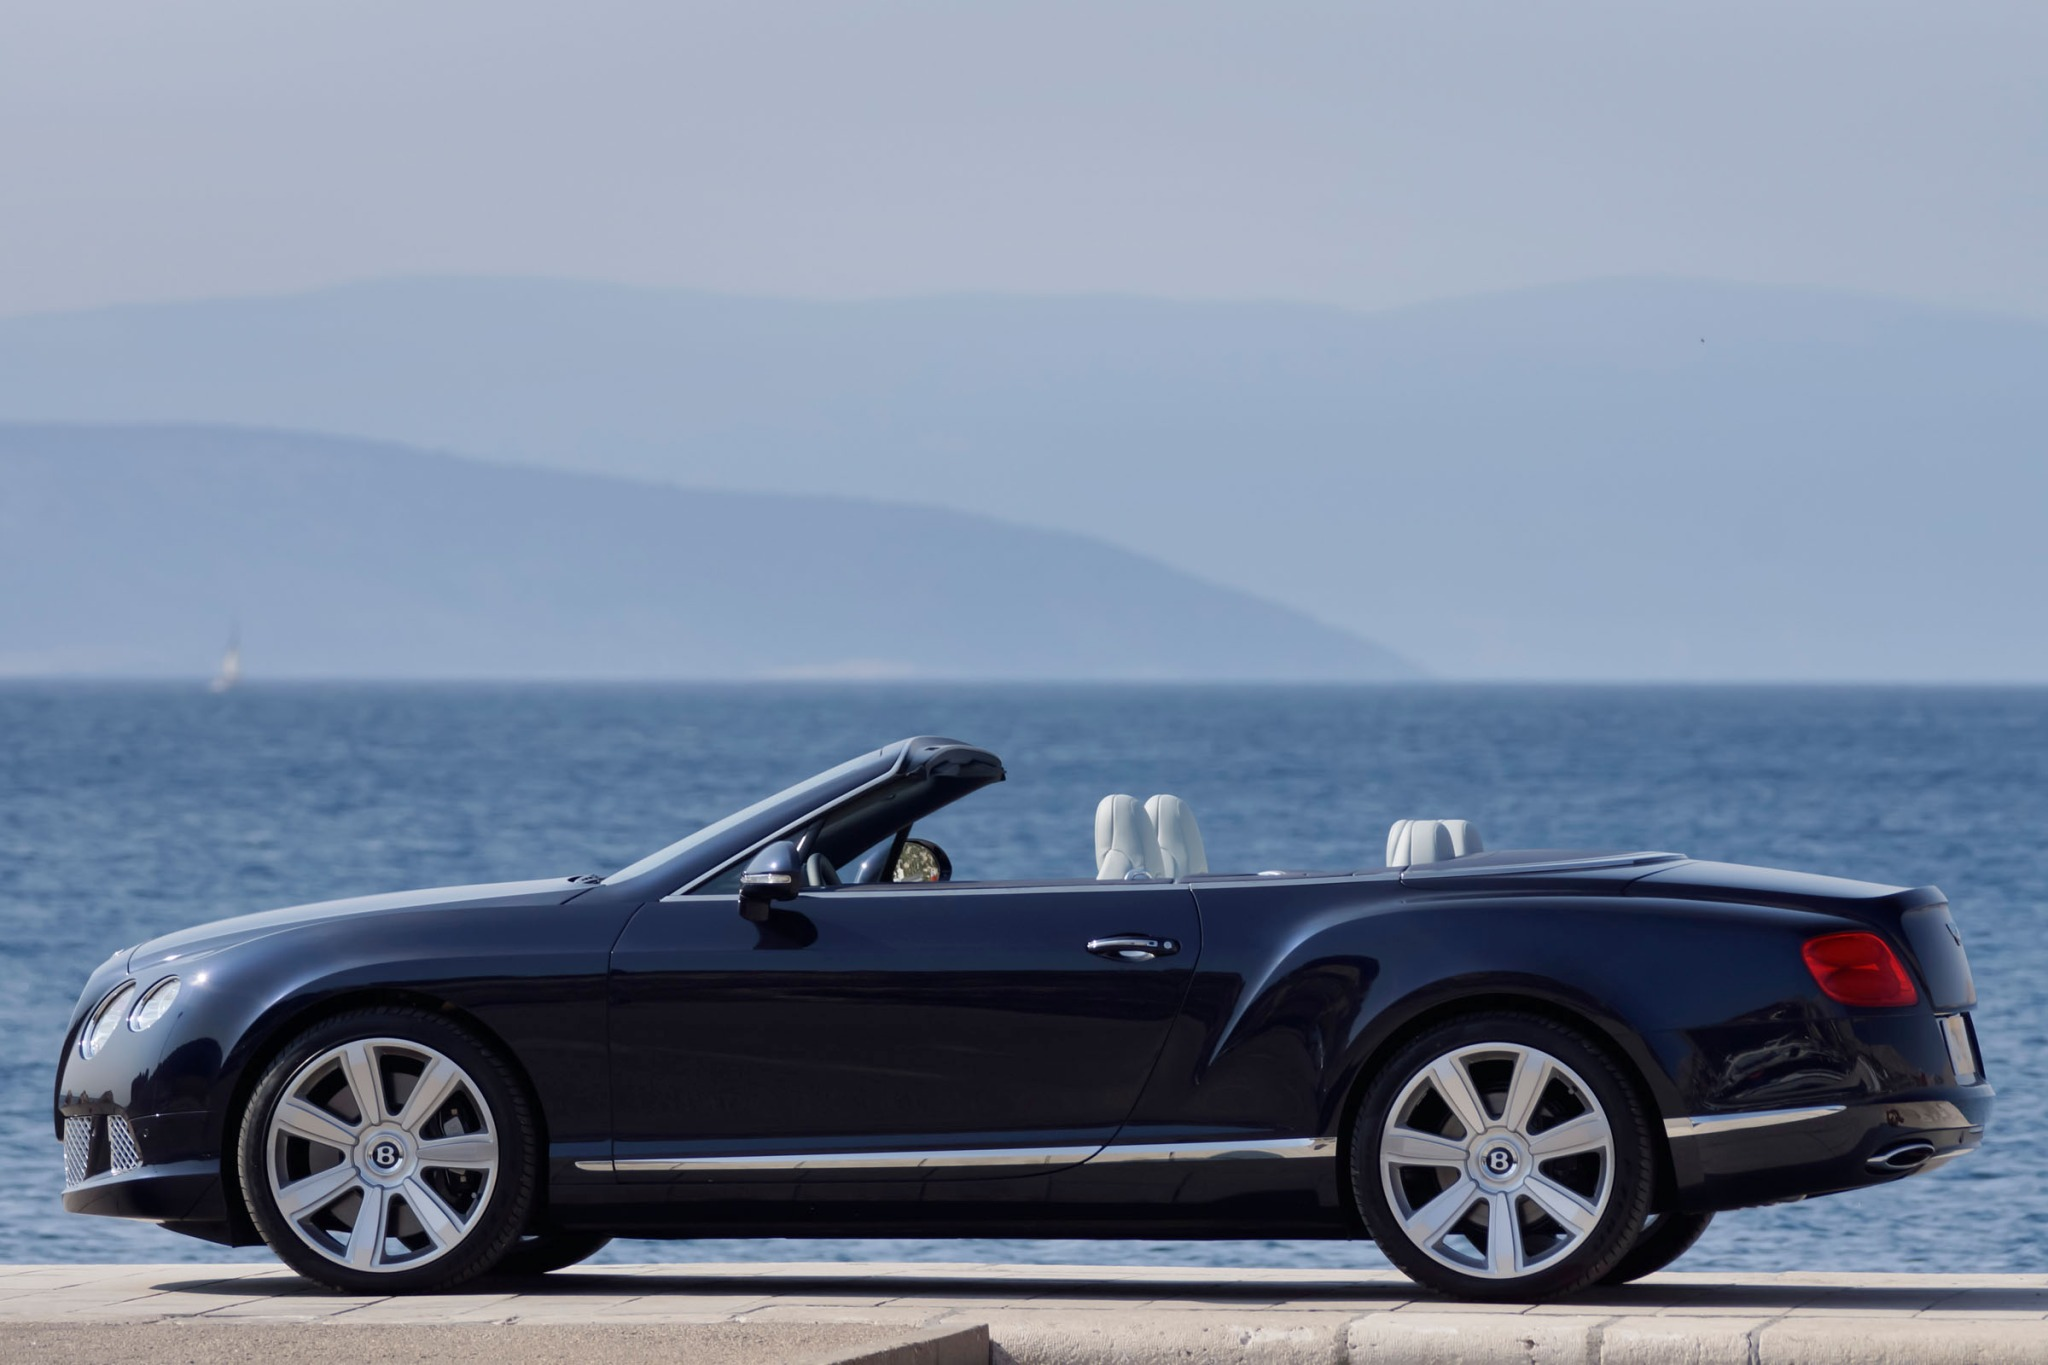 bentley continentalgtc gtc base continental vin oem coupe convertible price exterior fq